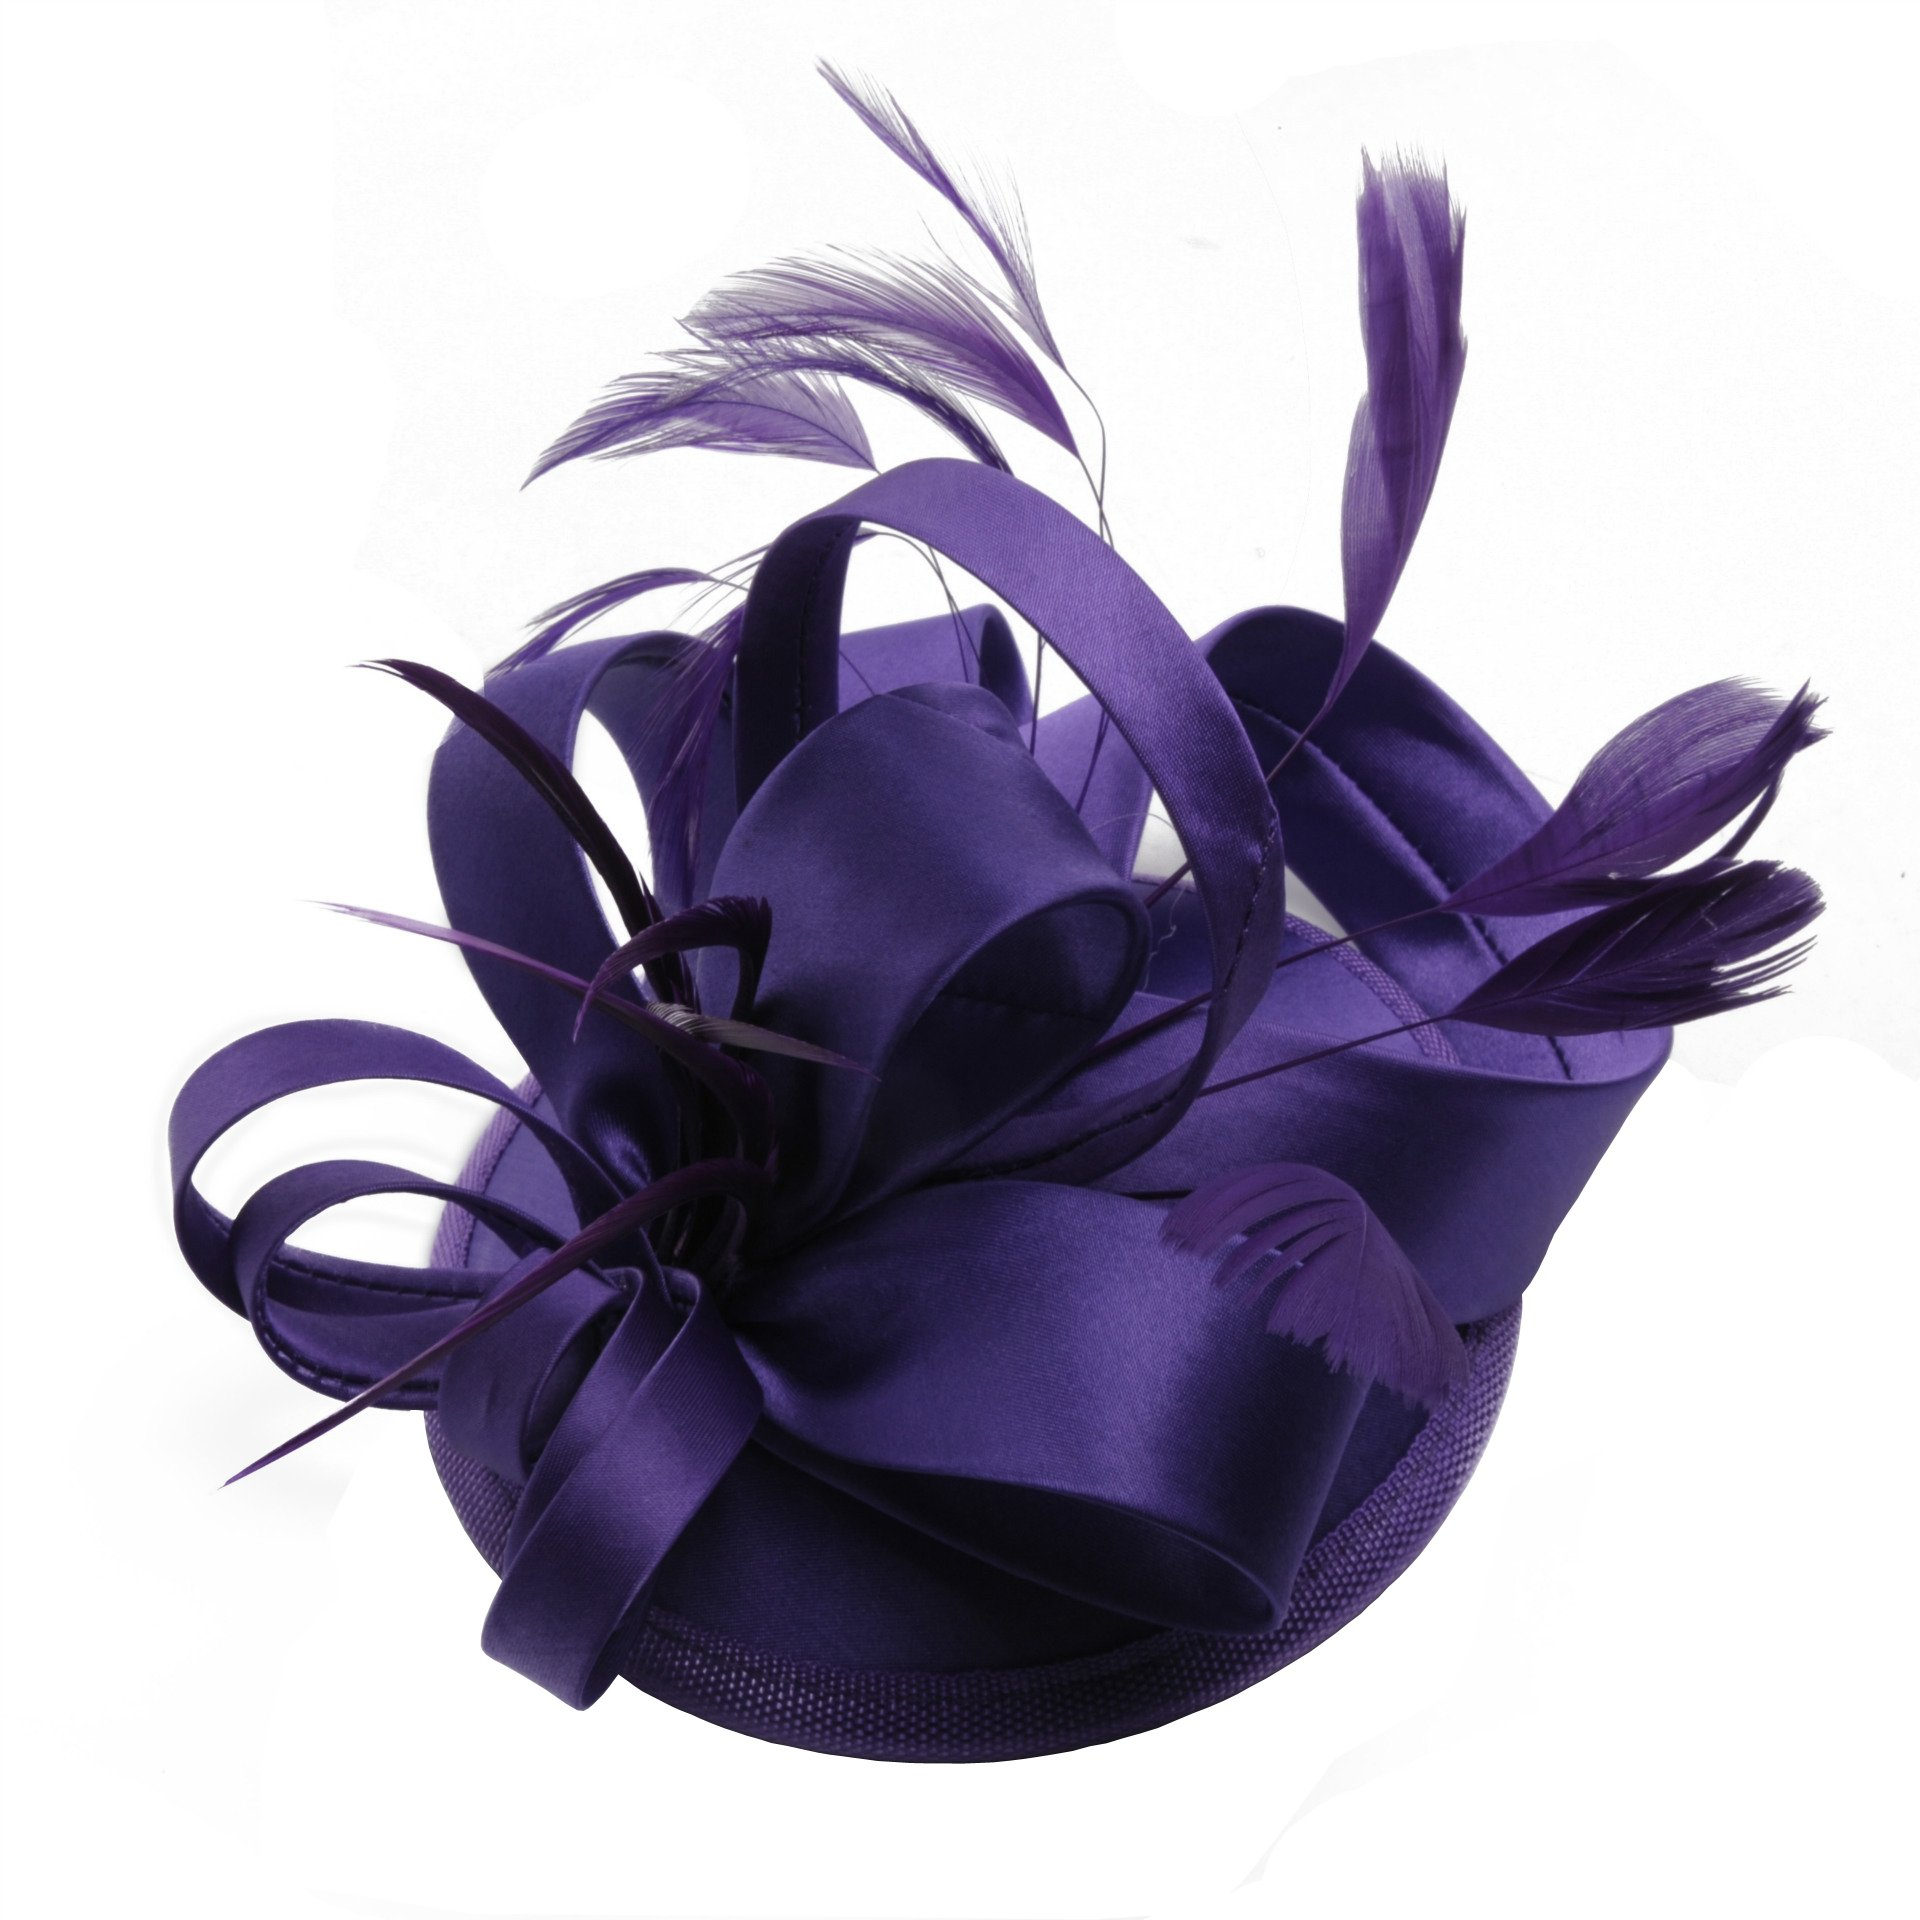 ZYLLGF Fascinators Headband Cocktail Tea Party Headwear for Women Wedding Accessory (Purple)